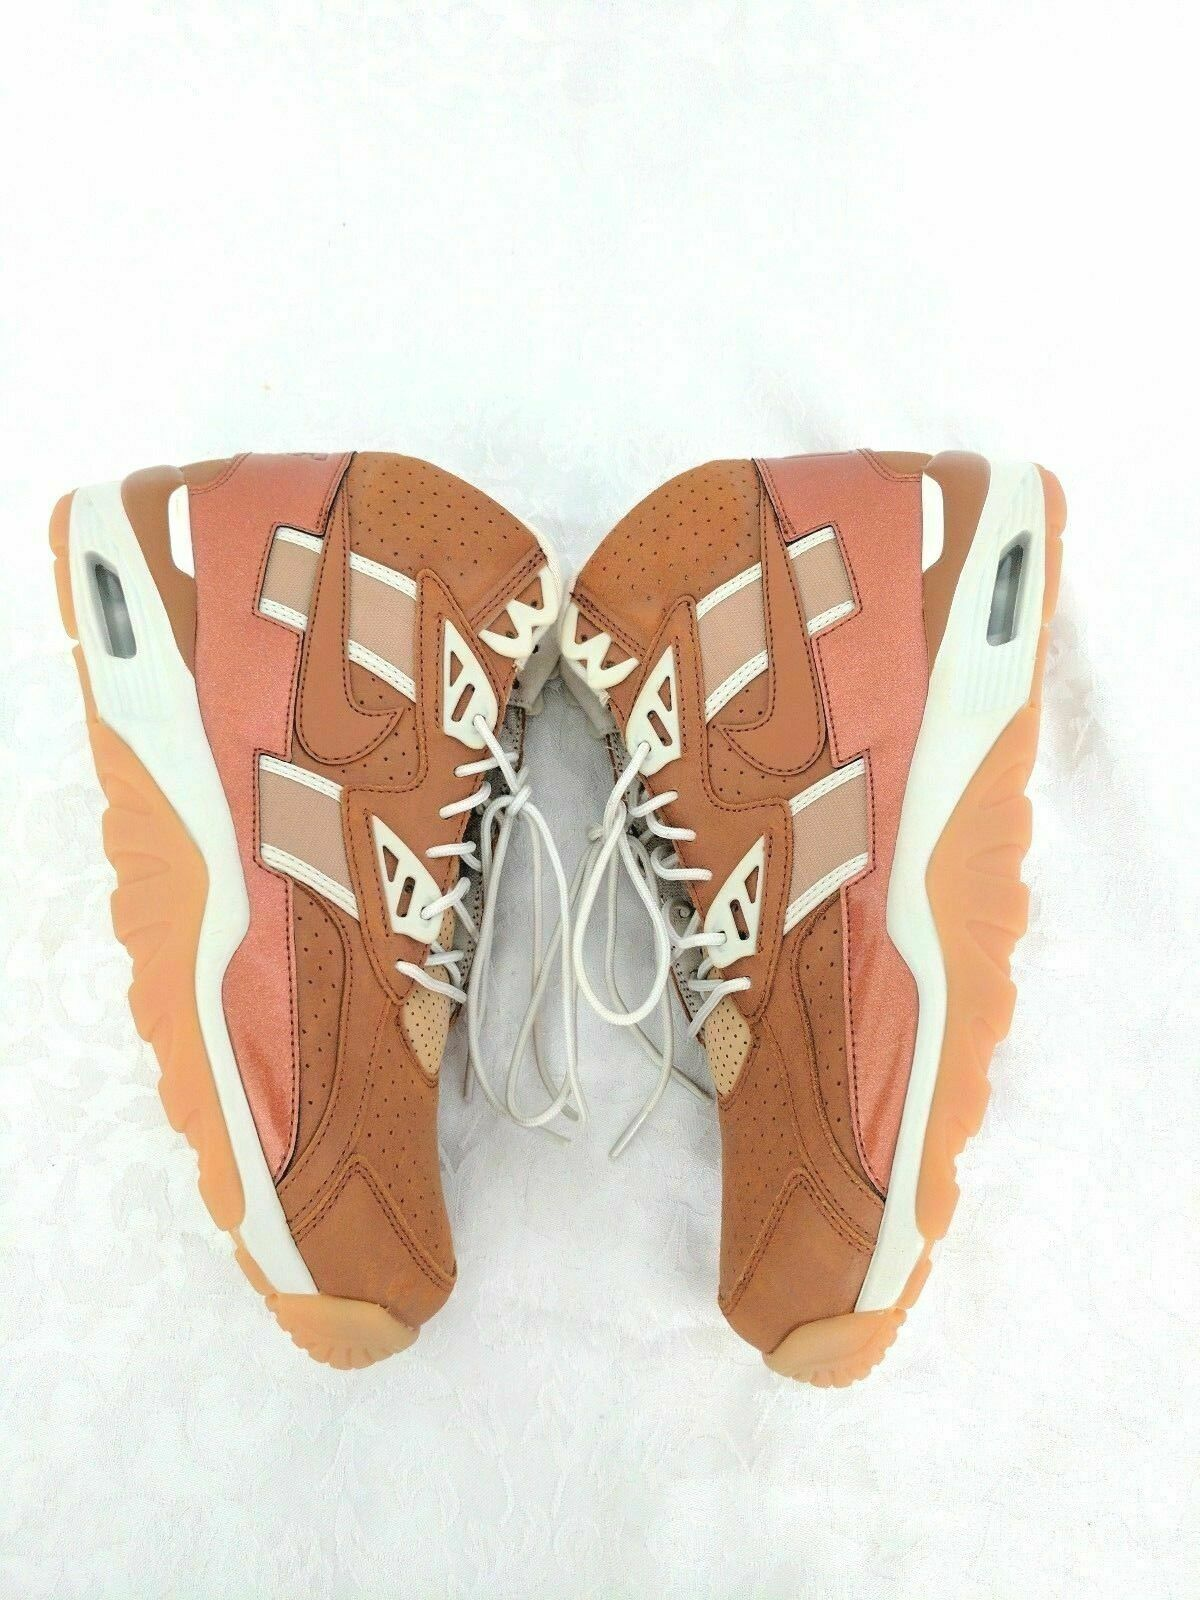 Nike air trainer sc bo jackson 148-529692 FT Size M09. Sample. No for resale